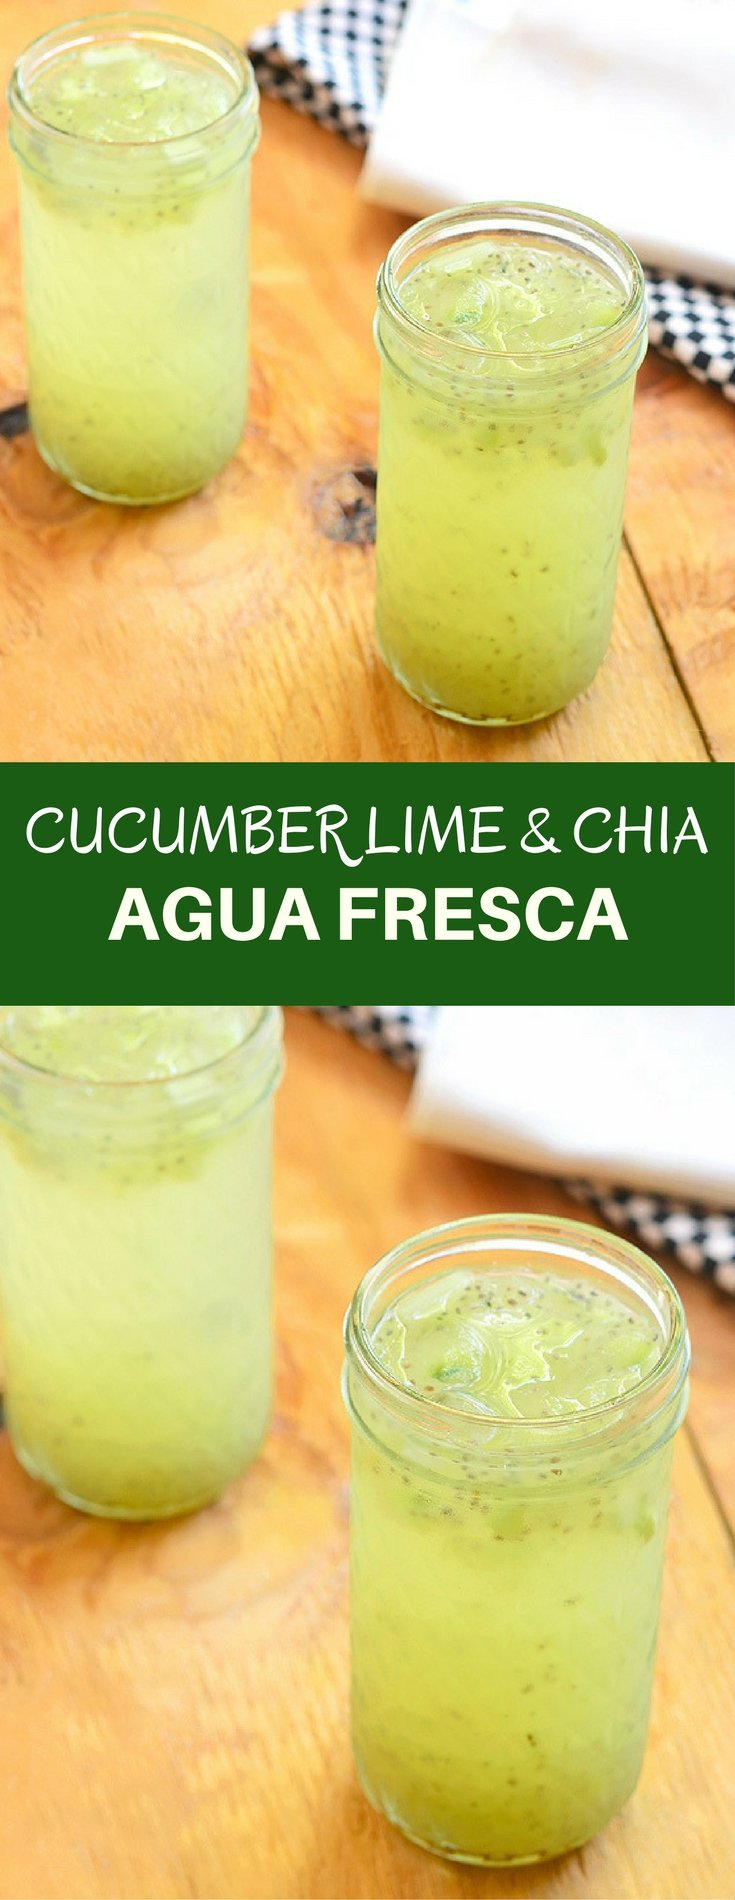 Cucumber Lime and Chia Fresca is a refreshing drink you'd want all summer long. With fresh cucumbers, freshly-squeezed lime juice, and superfood chia, this aqua fresca is a delicious way to hydrate!